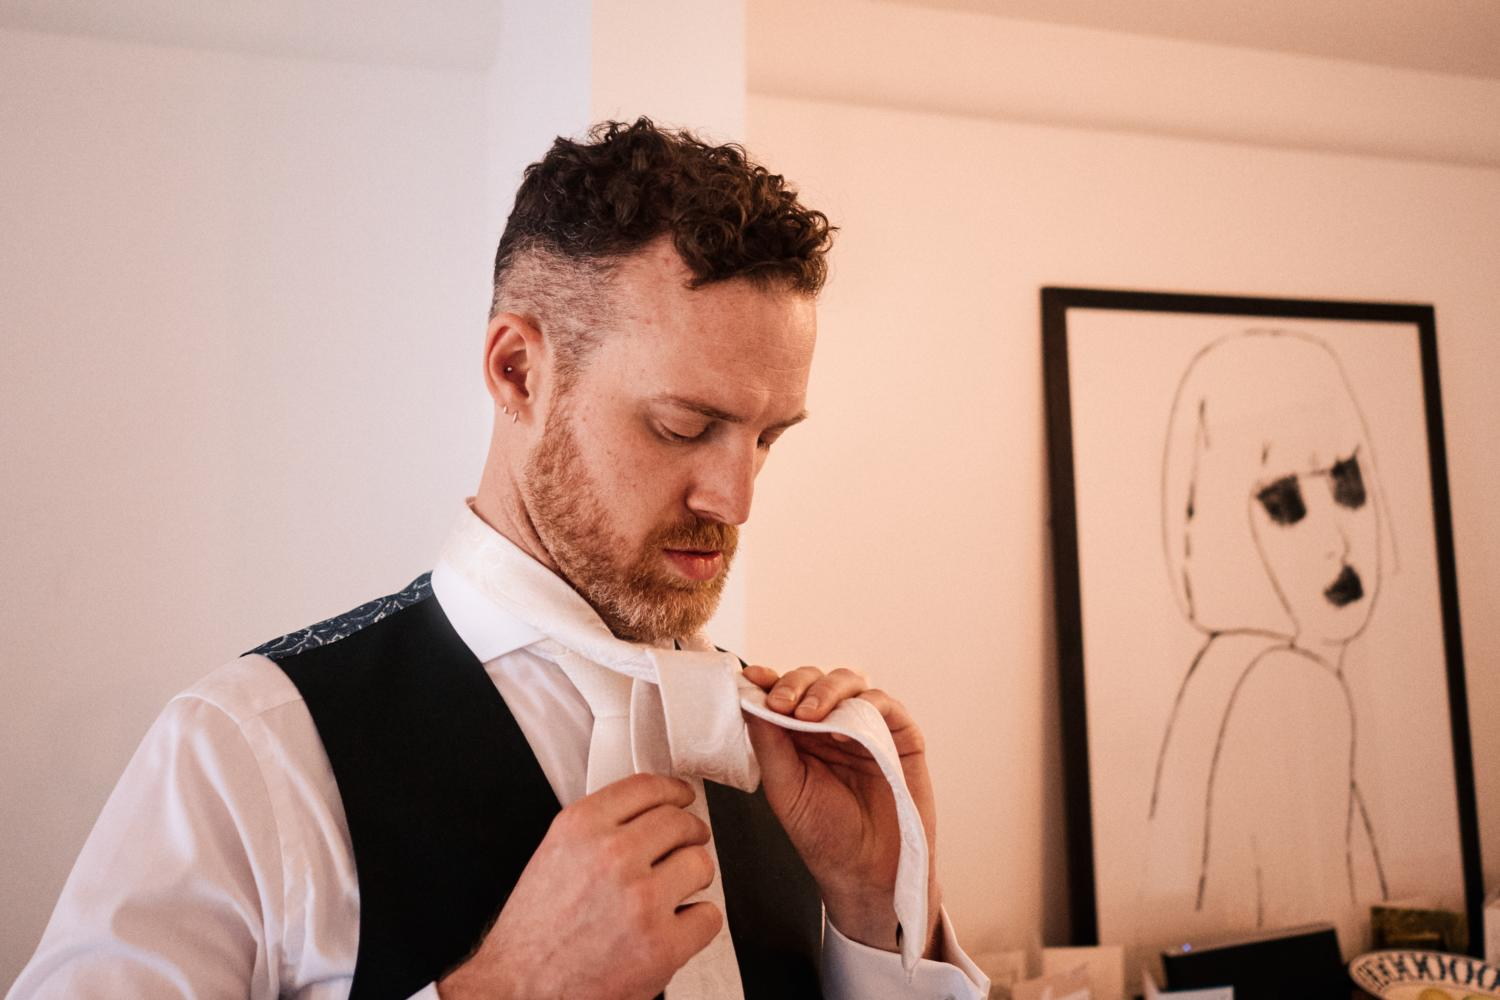 A groom in waistcoat fixes his white tie in front of a painting